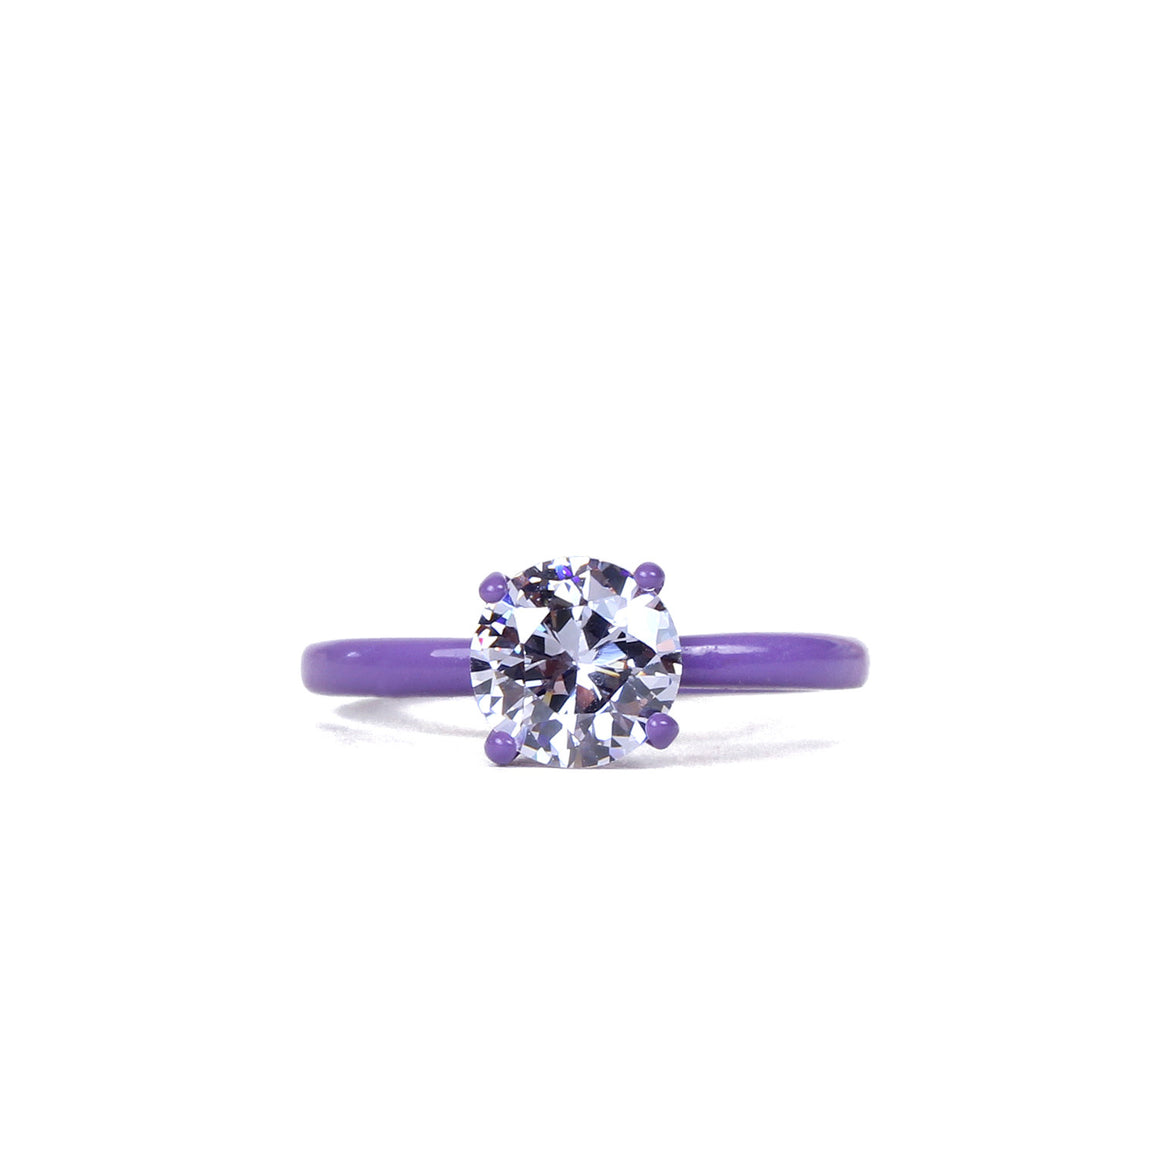 Lucky Charms Bling Ring - Lavender 7 mm Round - Powder Coated